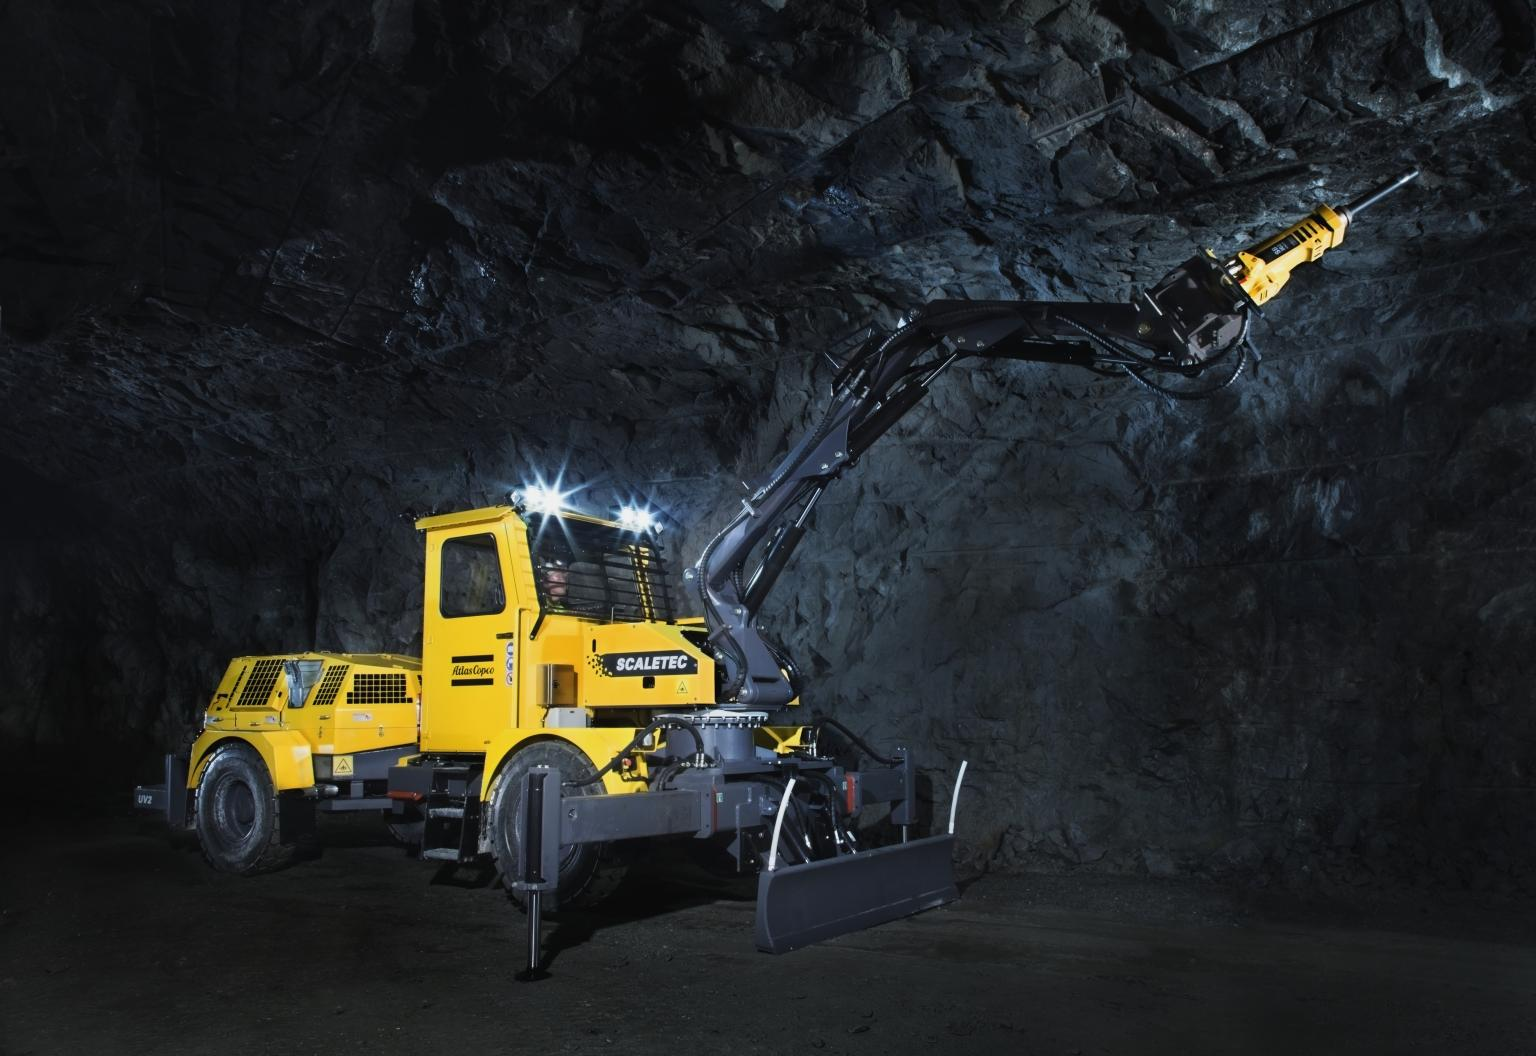 One of two smaller Scaletec rigs from Atlas Copco for flexible operations in smaller drives